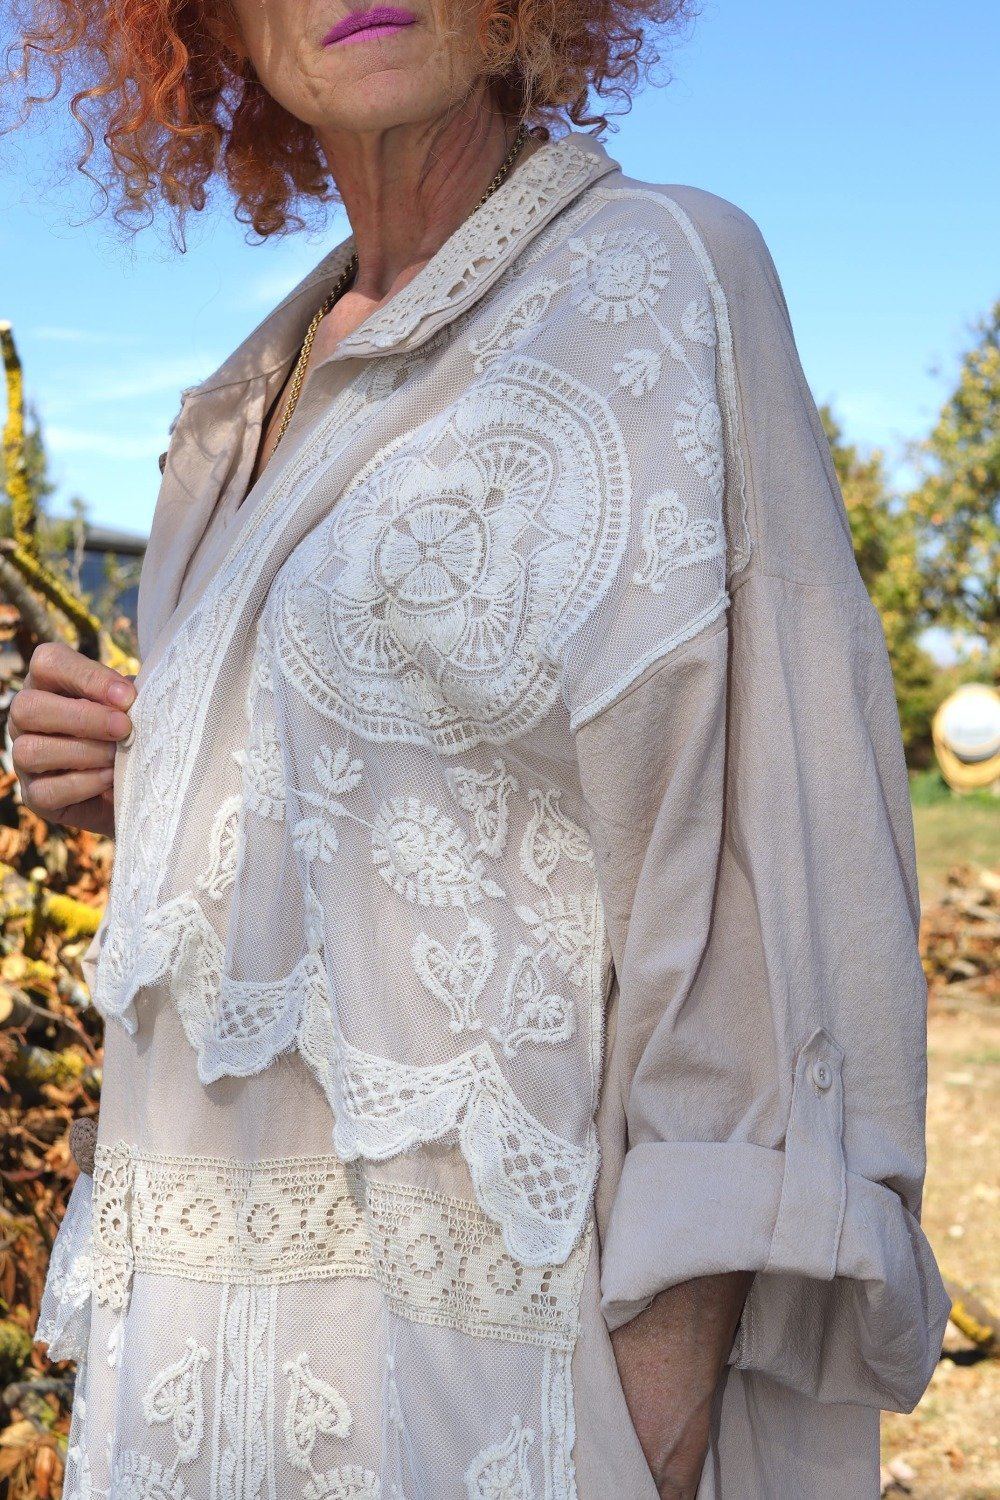 Robe Lin Personnalise Boheme Robe Grande Taille En Tulle Brodee Robe Manteau Superposition Dentelle Style Shabby Chic Un Grand Marche